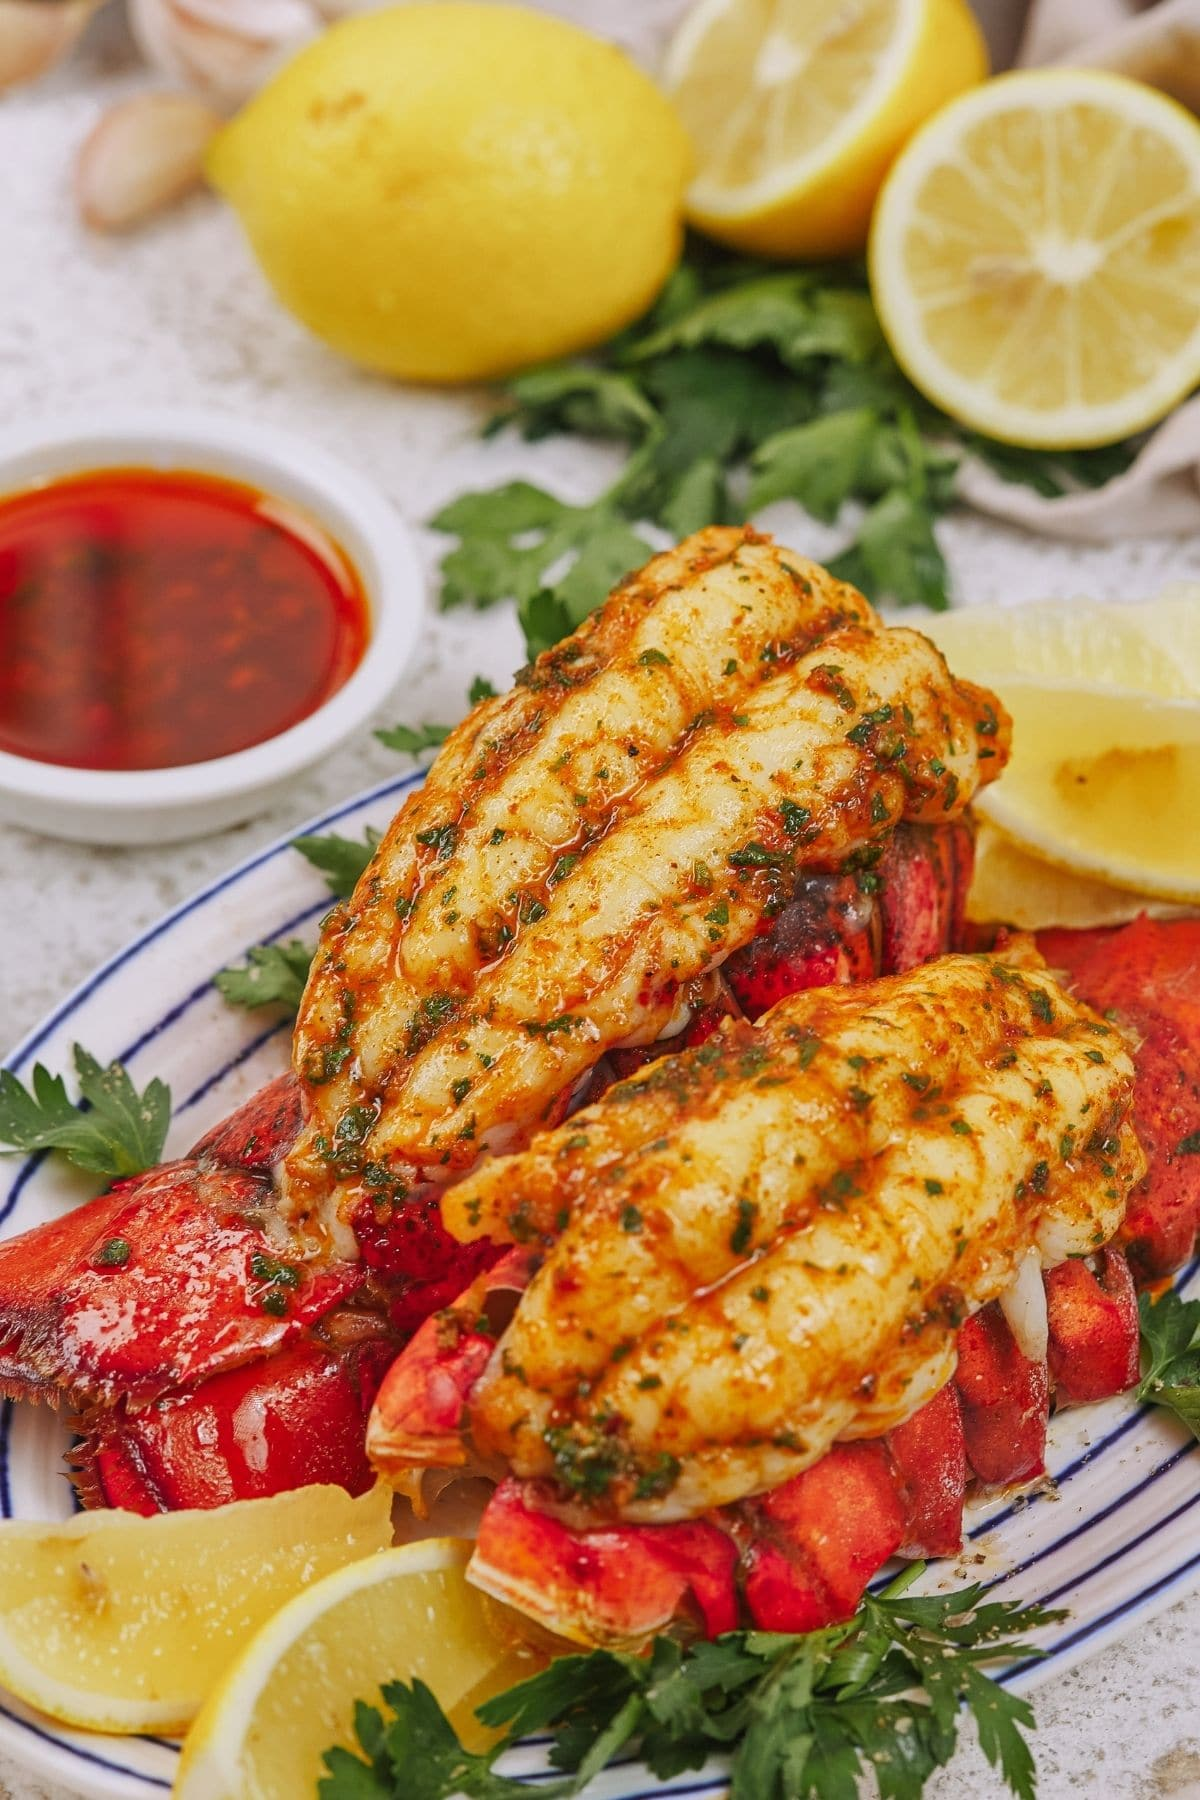 Lobster tails on plate net to bowl of butter sauce and sliced lemons